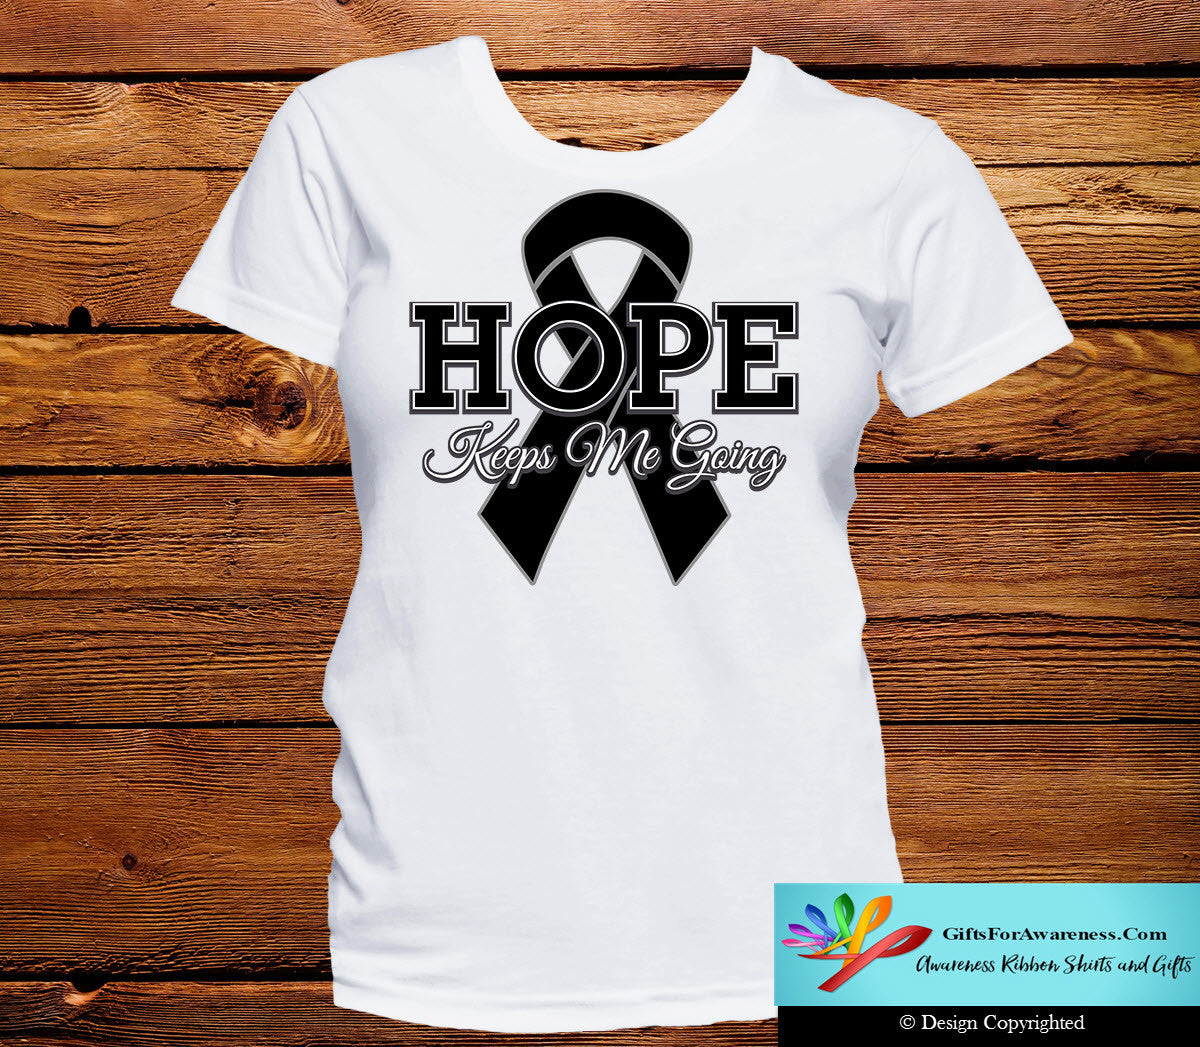 Skin Cancer Hope Keeps Me Going Shirts - GiftsForAwareness